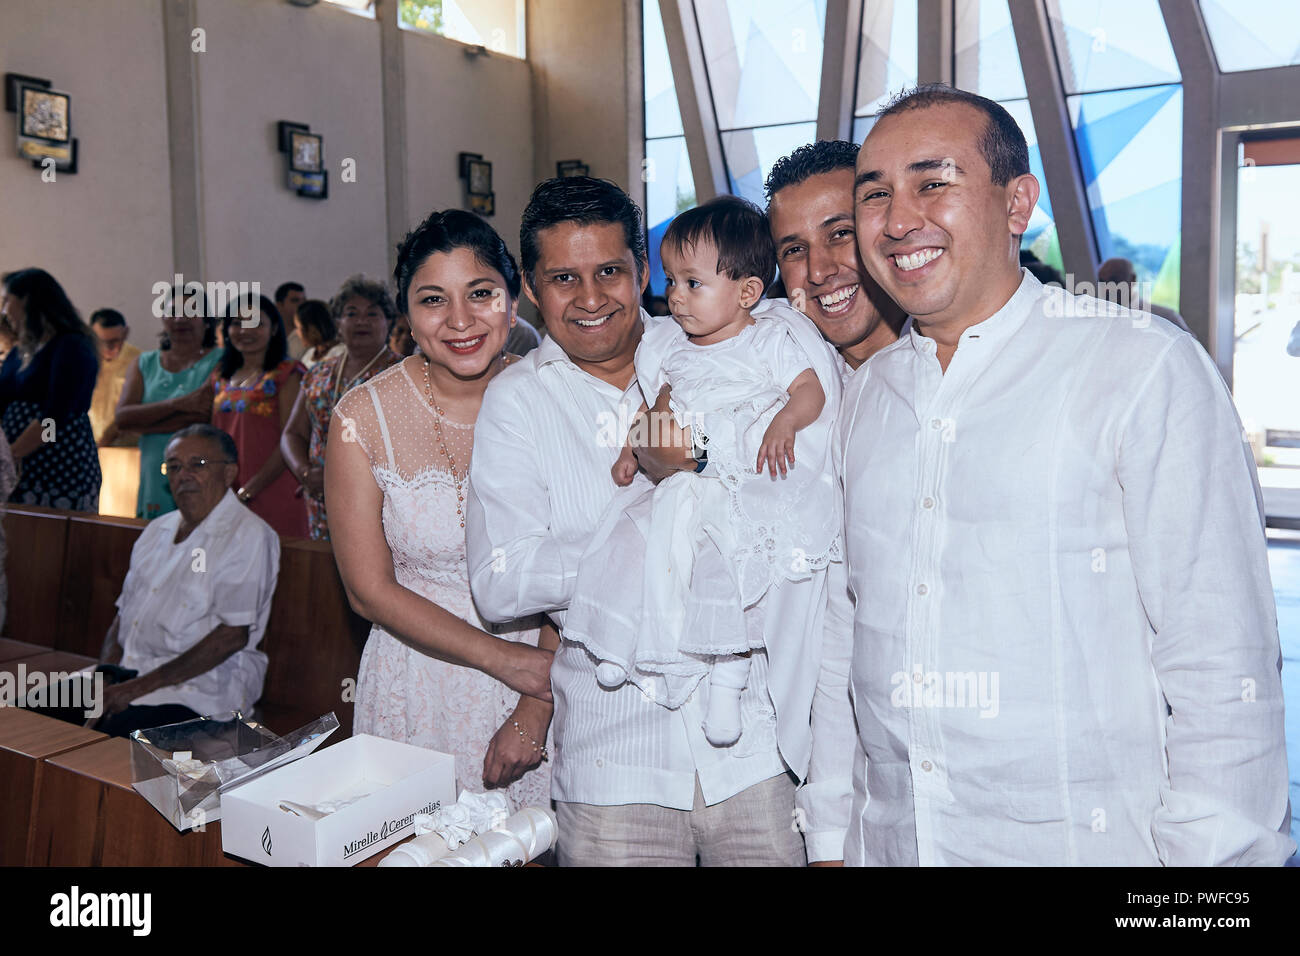 MERIDA, YUC/MEXICO - NOV 18, 2018: Godfather and wife hold their goddaughter, dressed in christening robe. Father and his brother next to her. - Stock Image